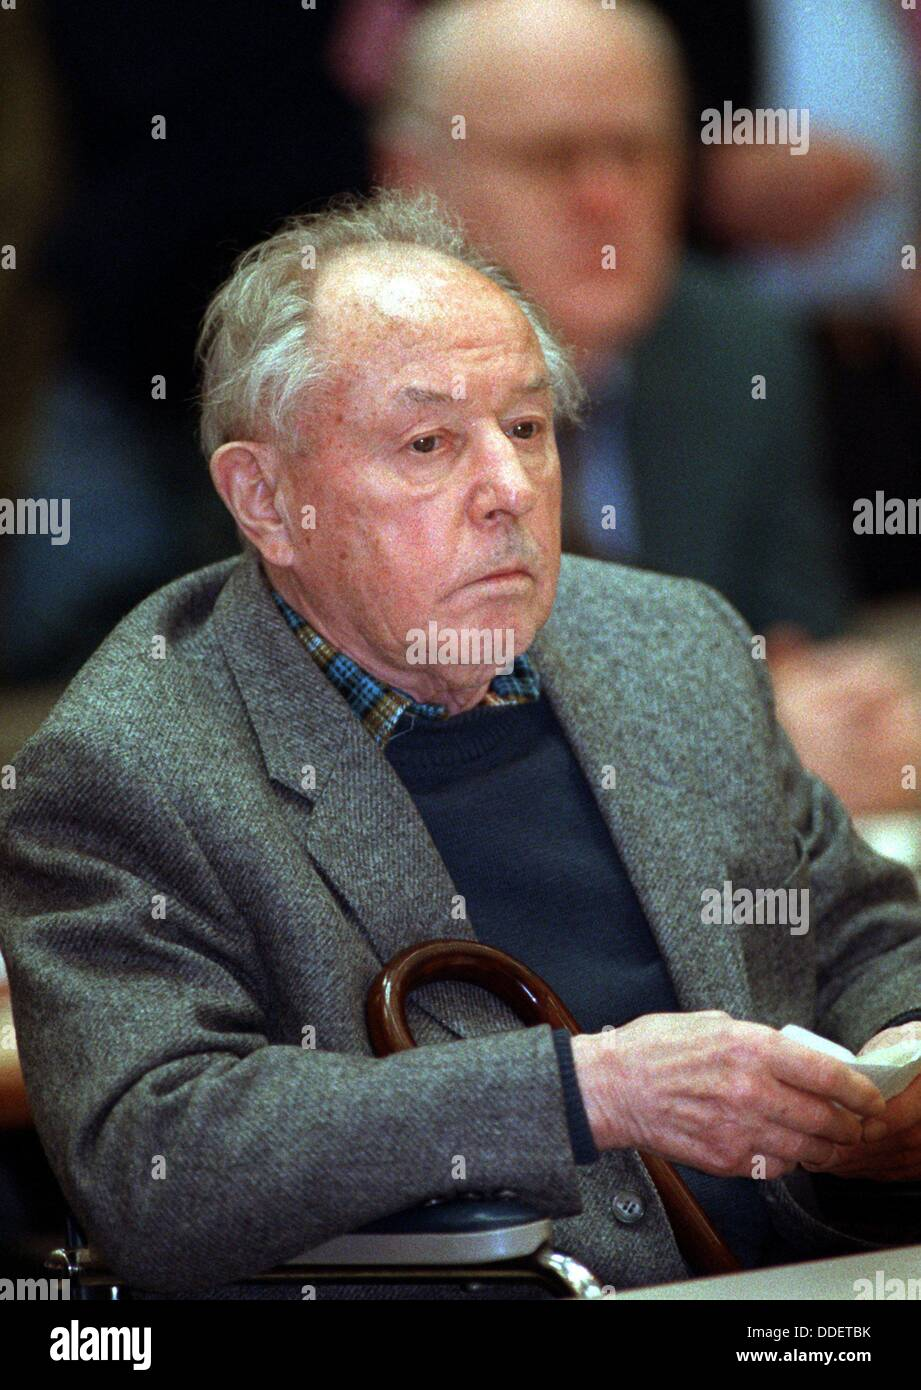 (dpa files) - Erich Mielke, former Minister of National Security (Staatssicherheit) in the GDR, pictured during - Stock Image